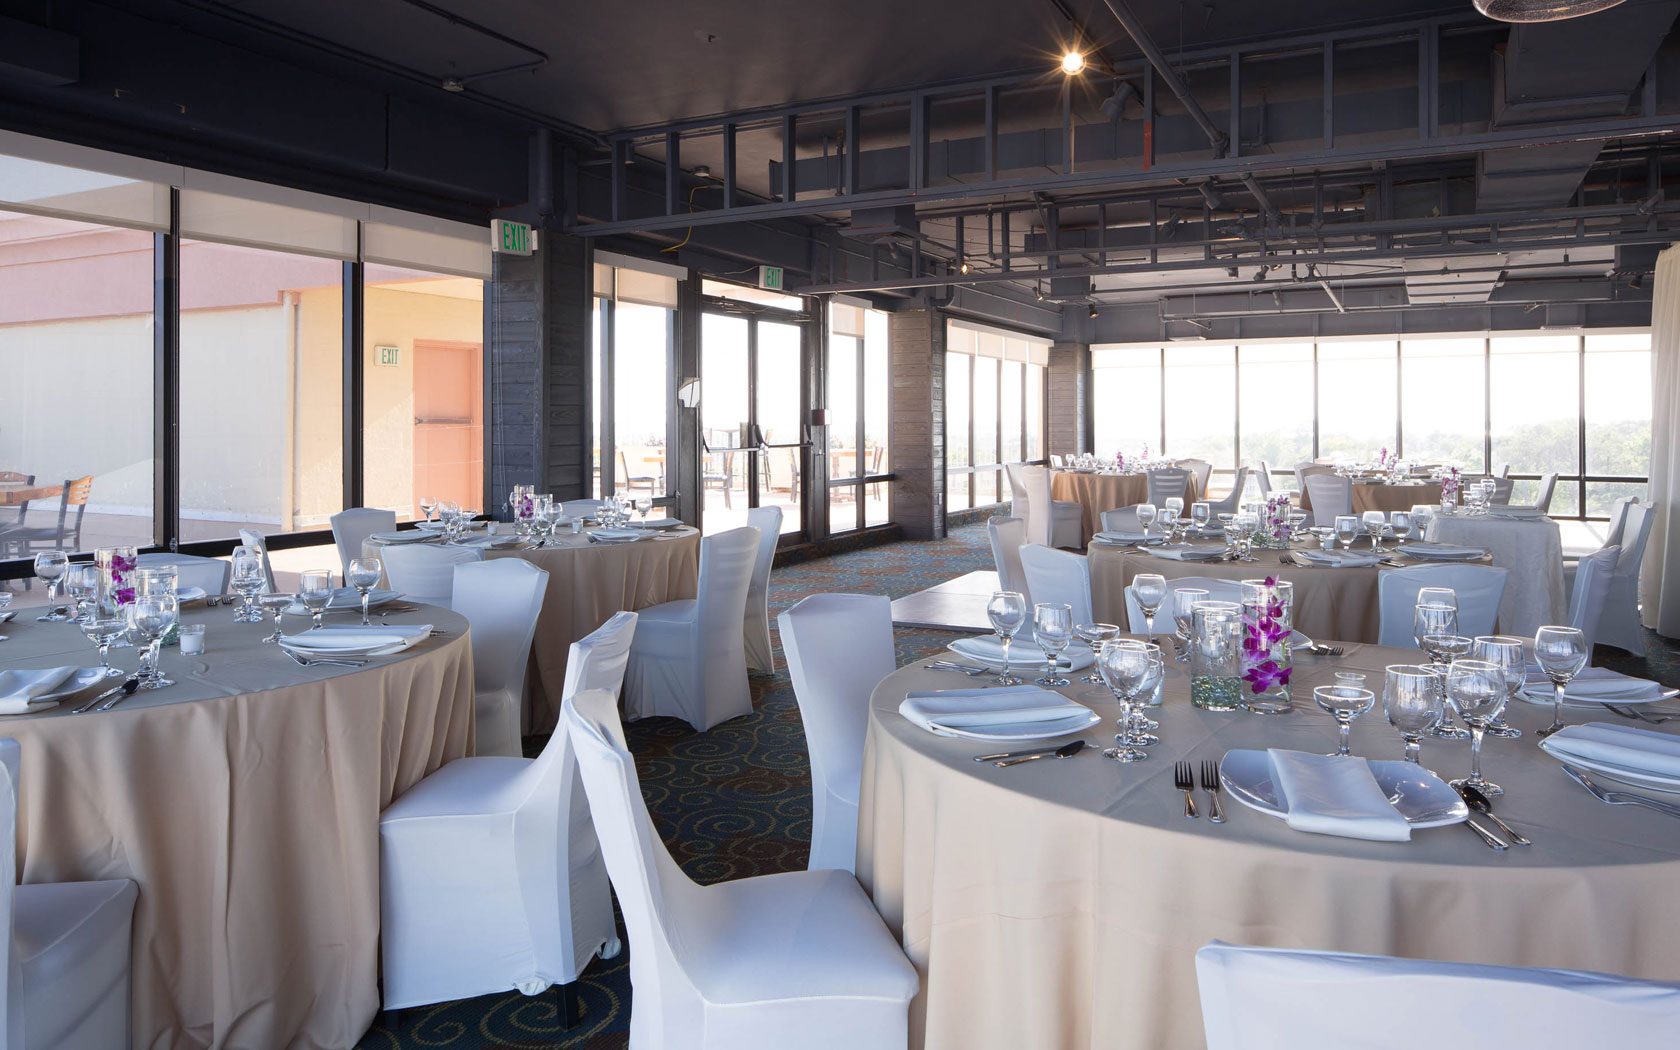 Event space housing several round tables with off white table clothes, covered chairs and formal dinner ware. Large glass wall opens to outdoor patio